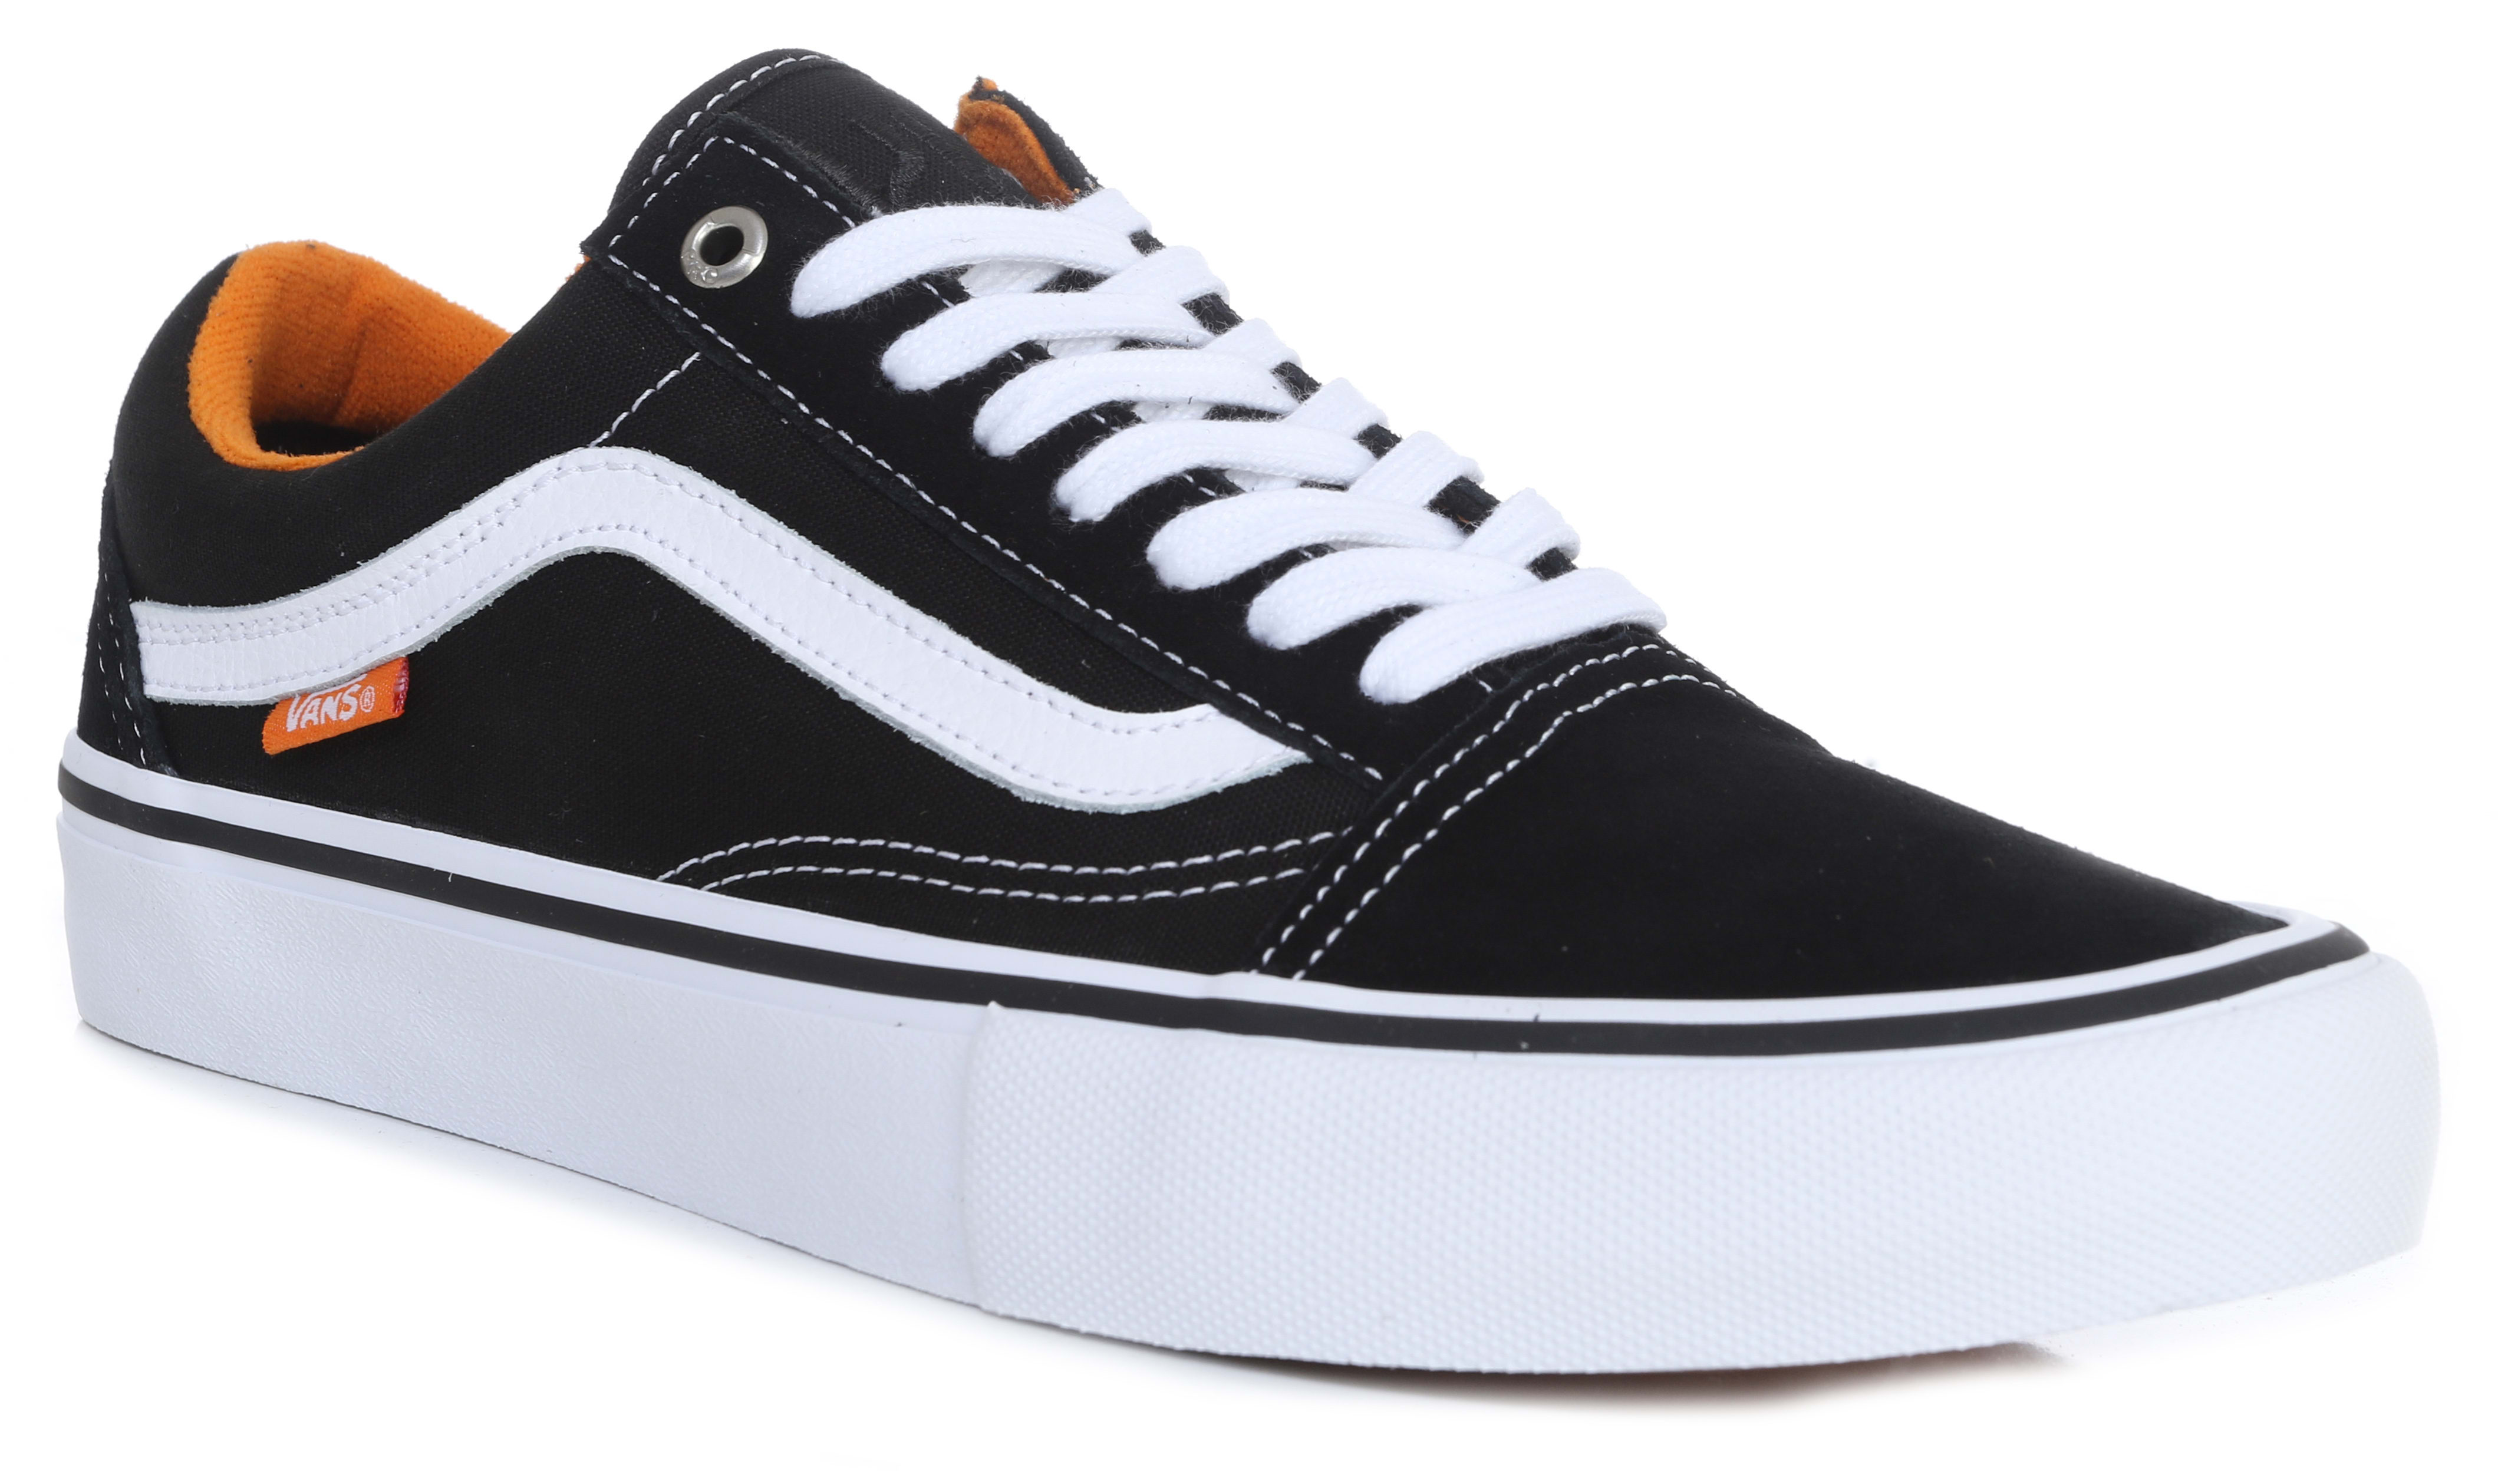 Cult Vans Shoes